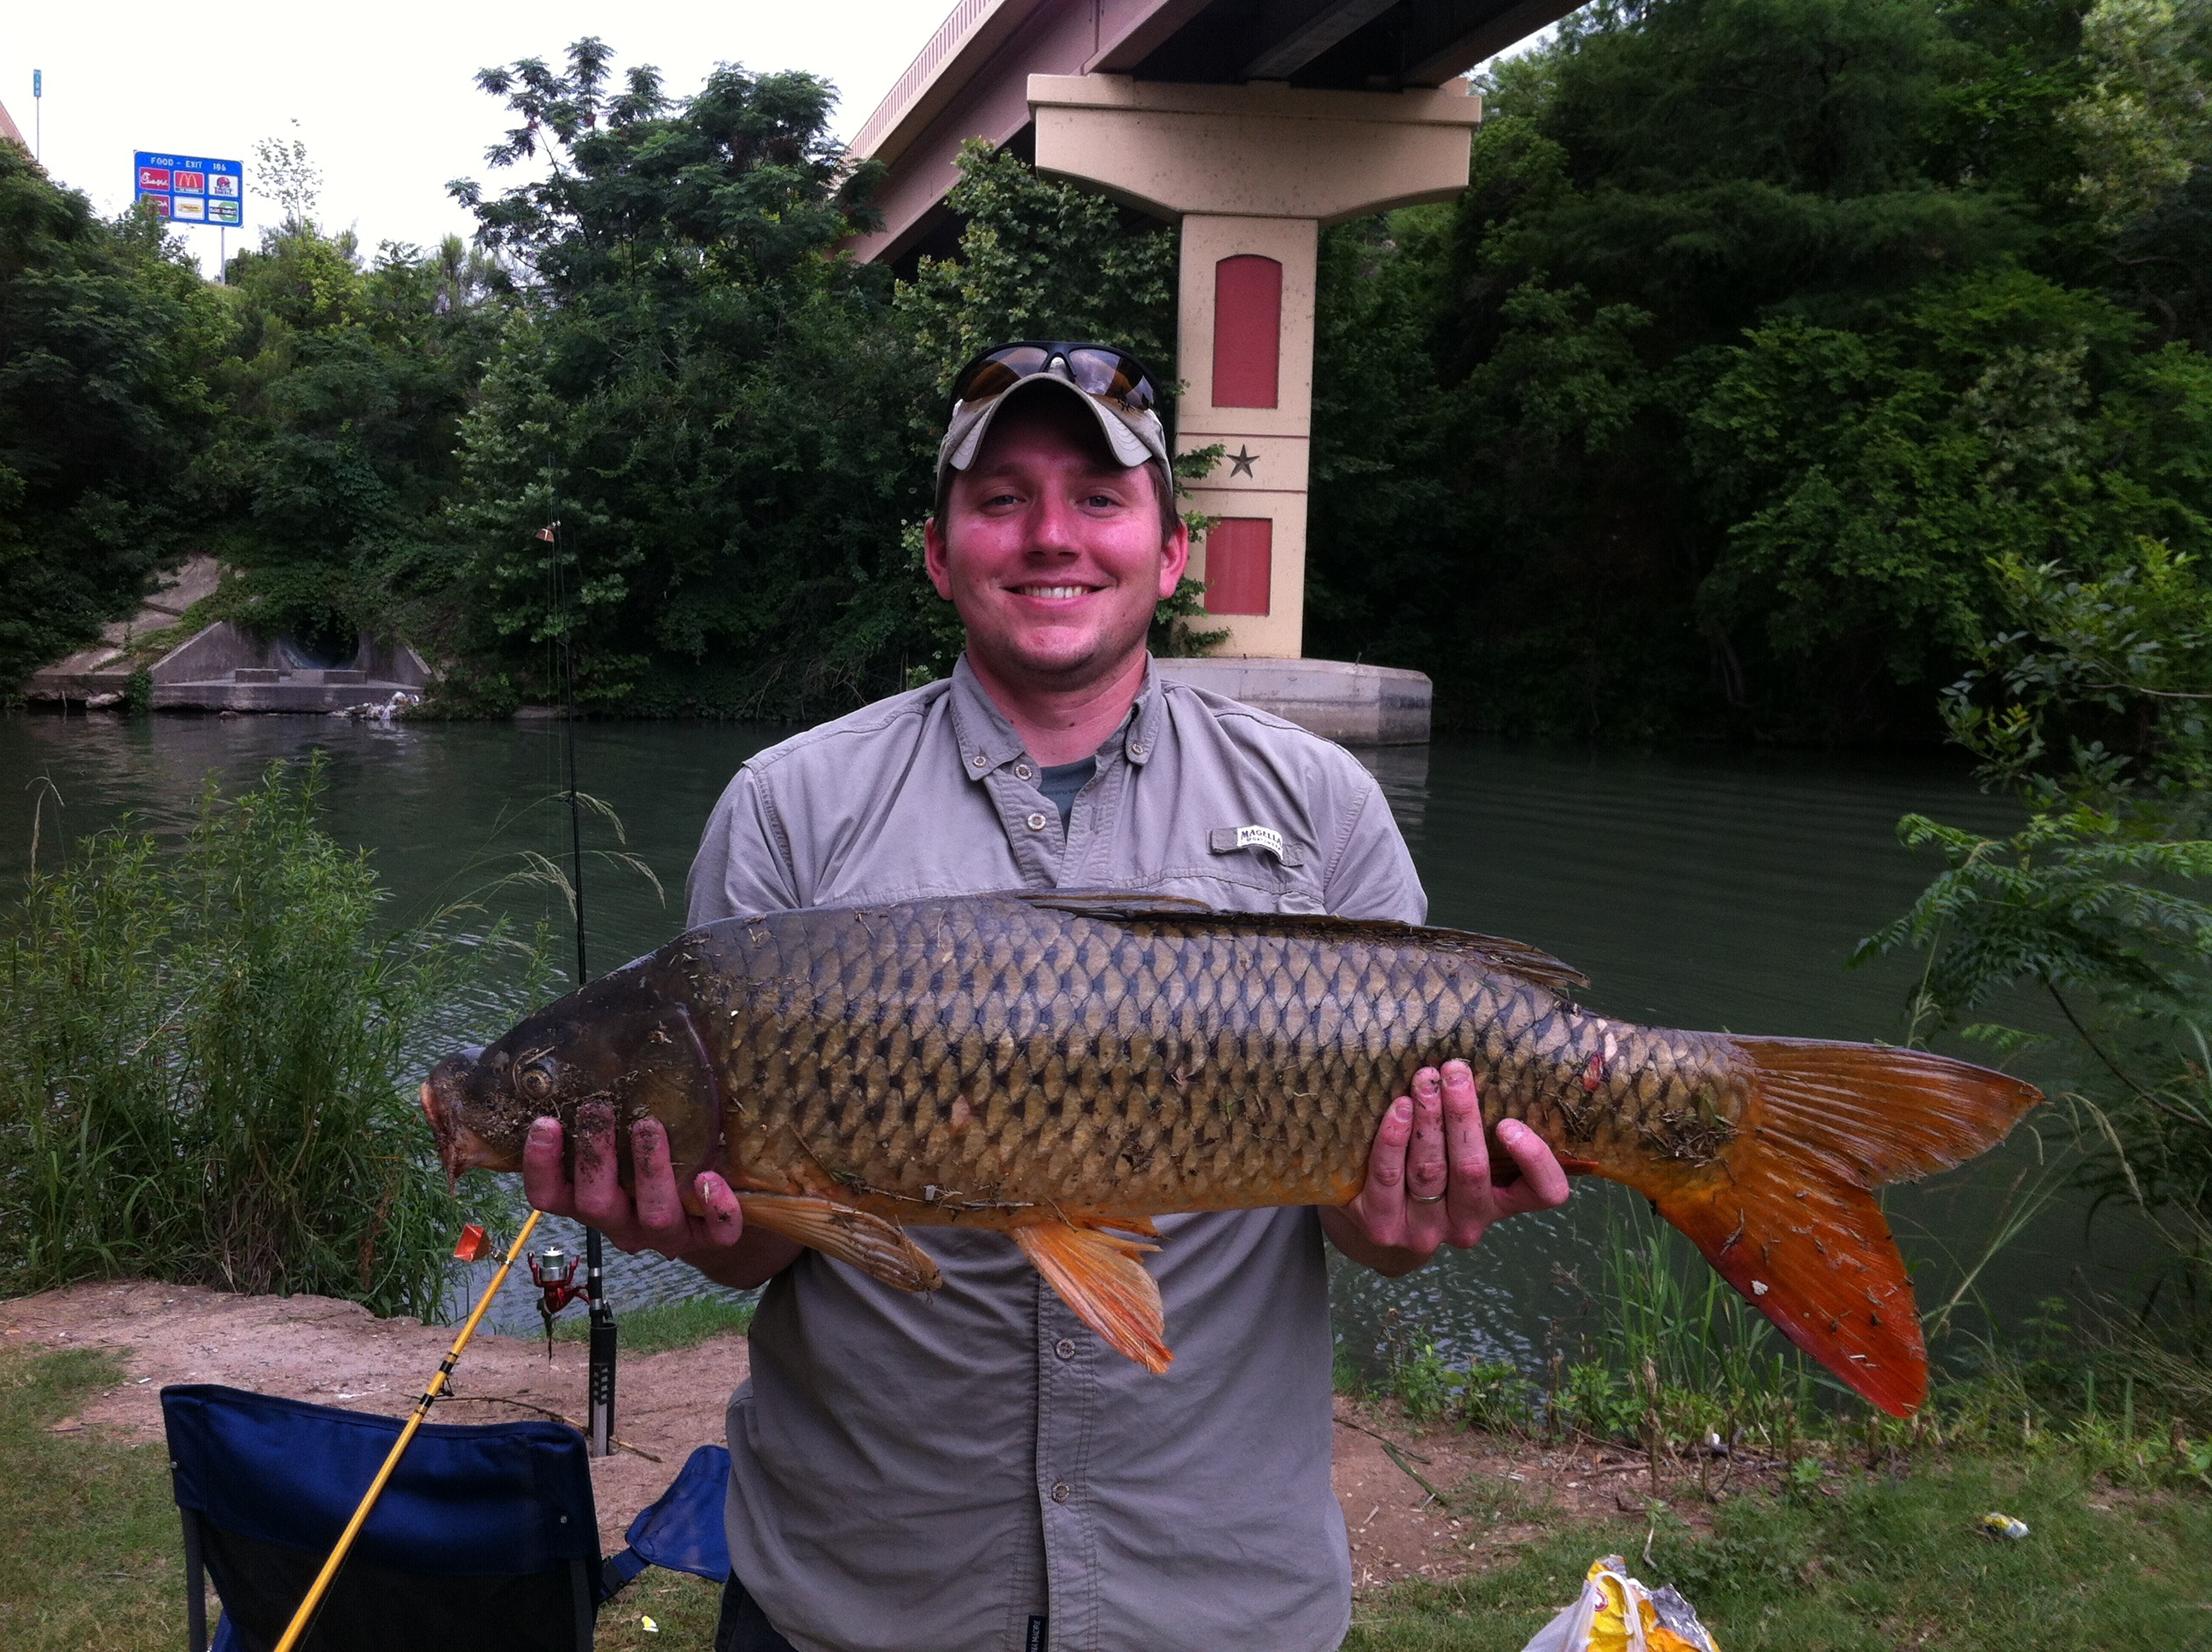 Michael Atkins Jr Leon valley Texas  35 inch common carp. I'm new to this and don't keep them.